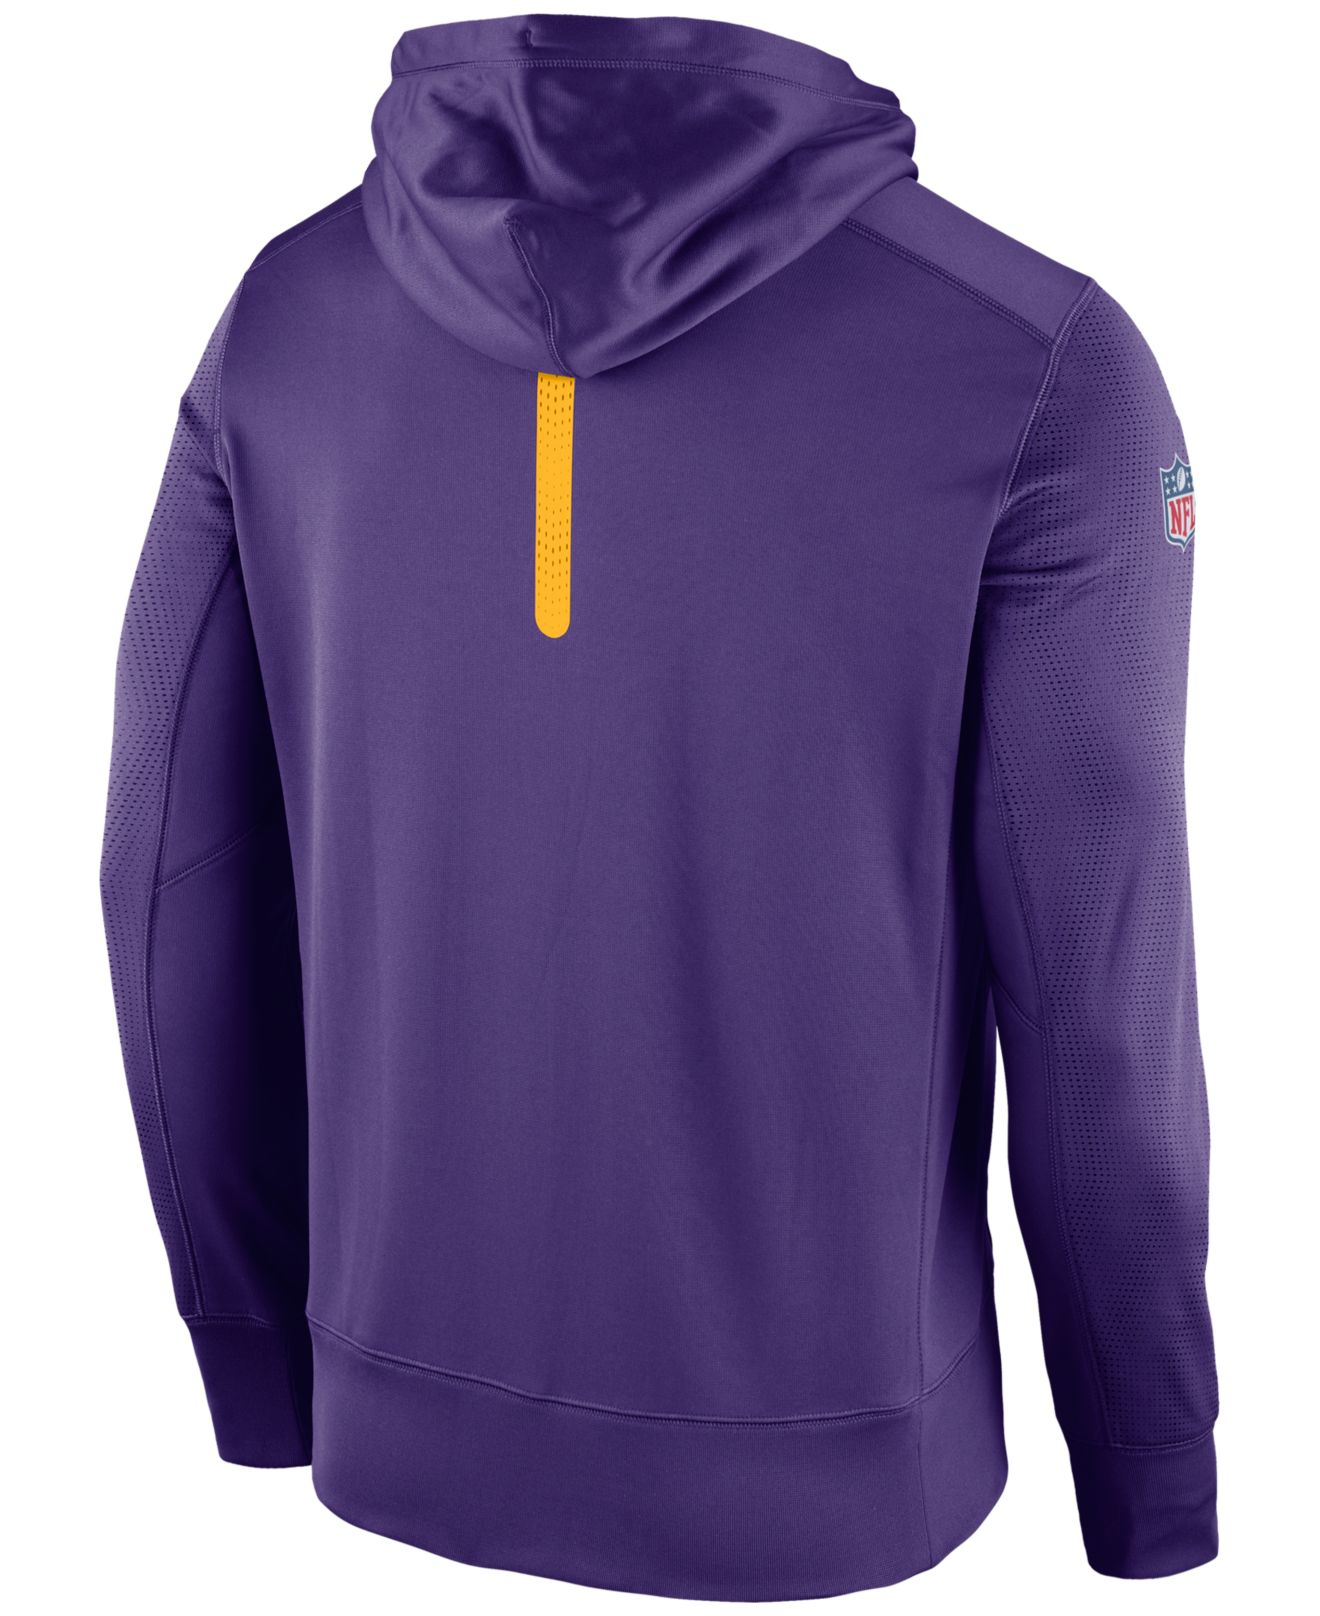 Find great deals on eBay for Mens Purple Hoodie in Men's Sweats and Hoodies. Shop with confidence.